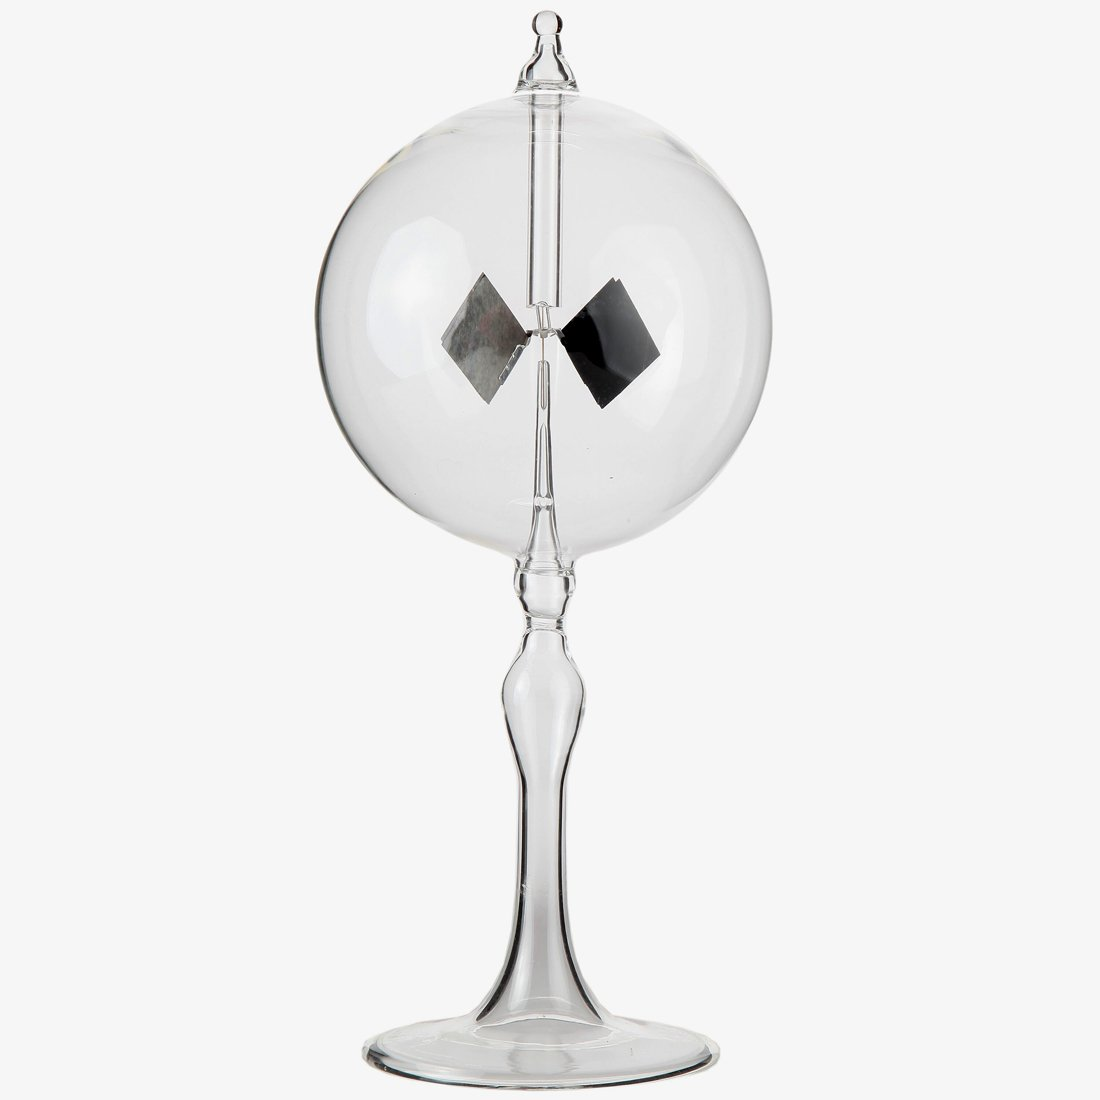 Lily's Home Solar Radiometer Crookes Light Mill for Detecting Sunlight and Electromagnetic Radiation, Fascinating and Functional Gift Ideal for Student or Science Guru, Clear Sphere, 4